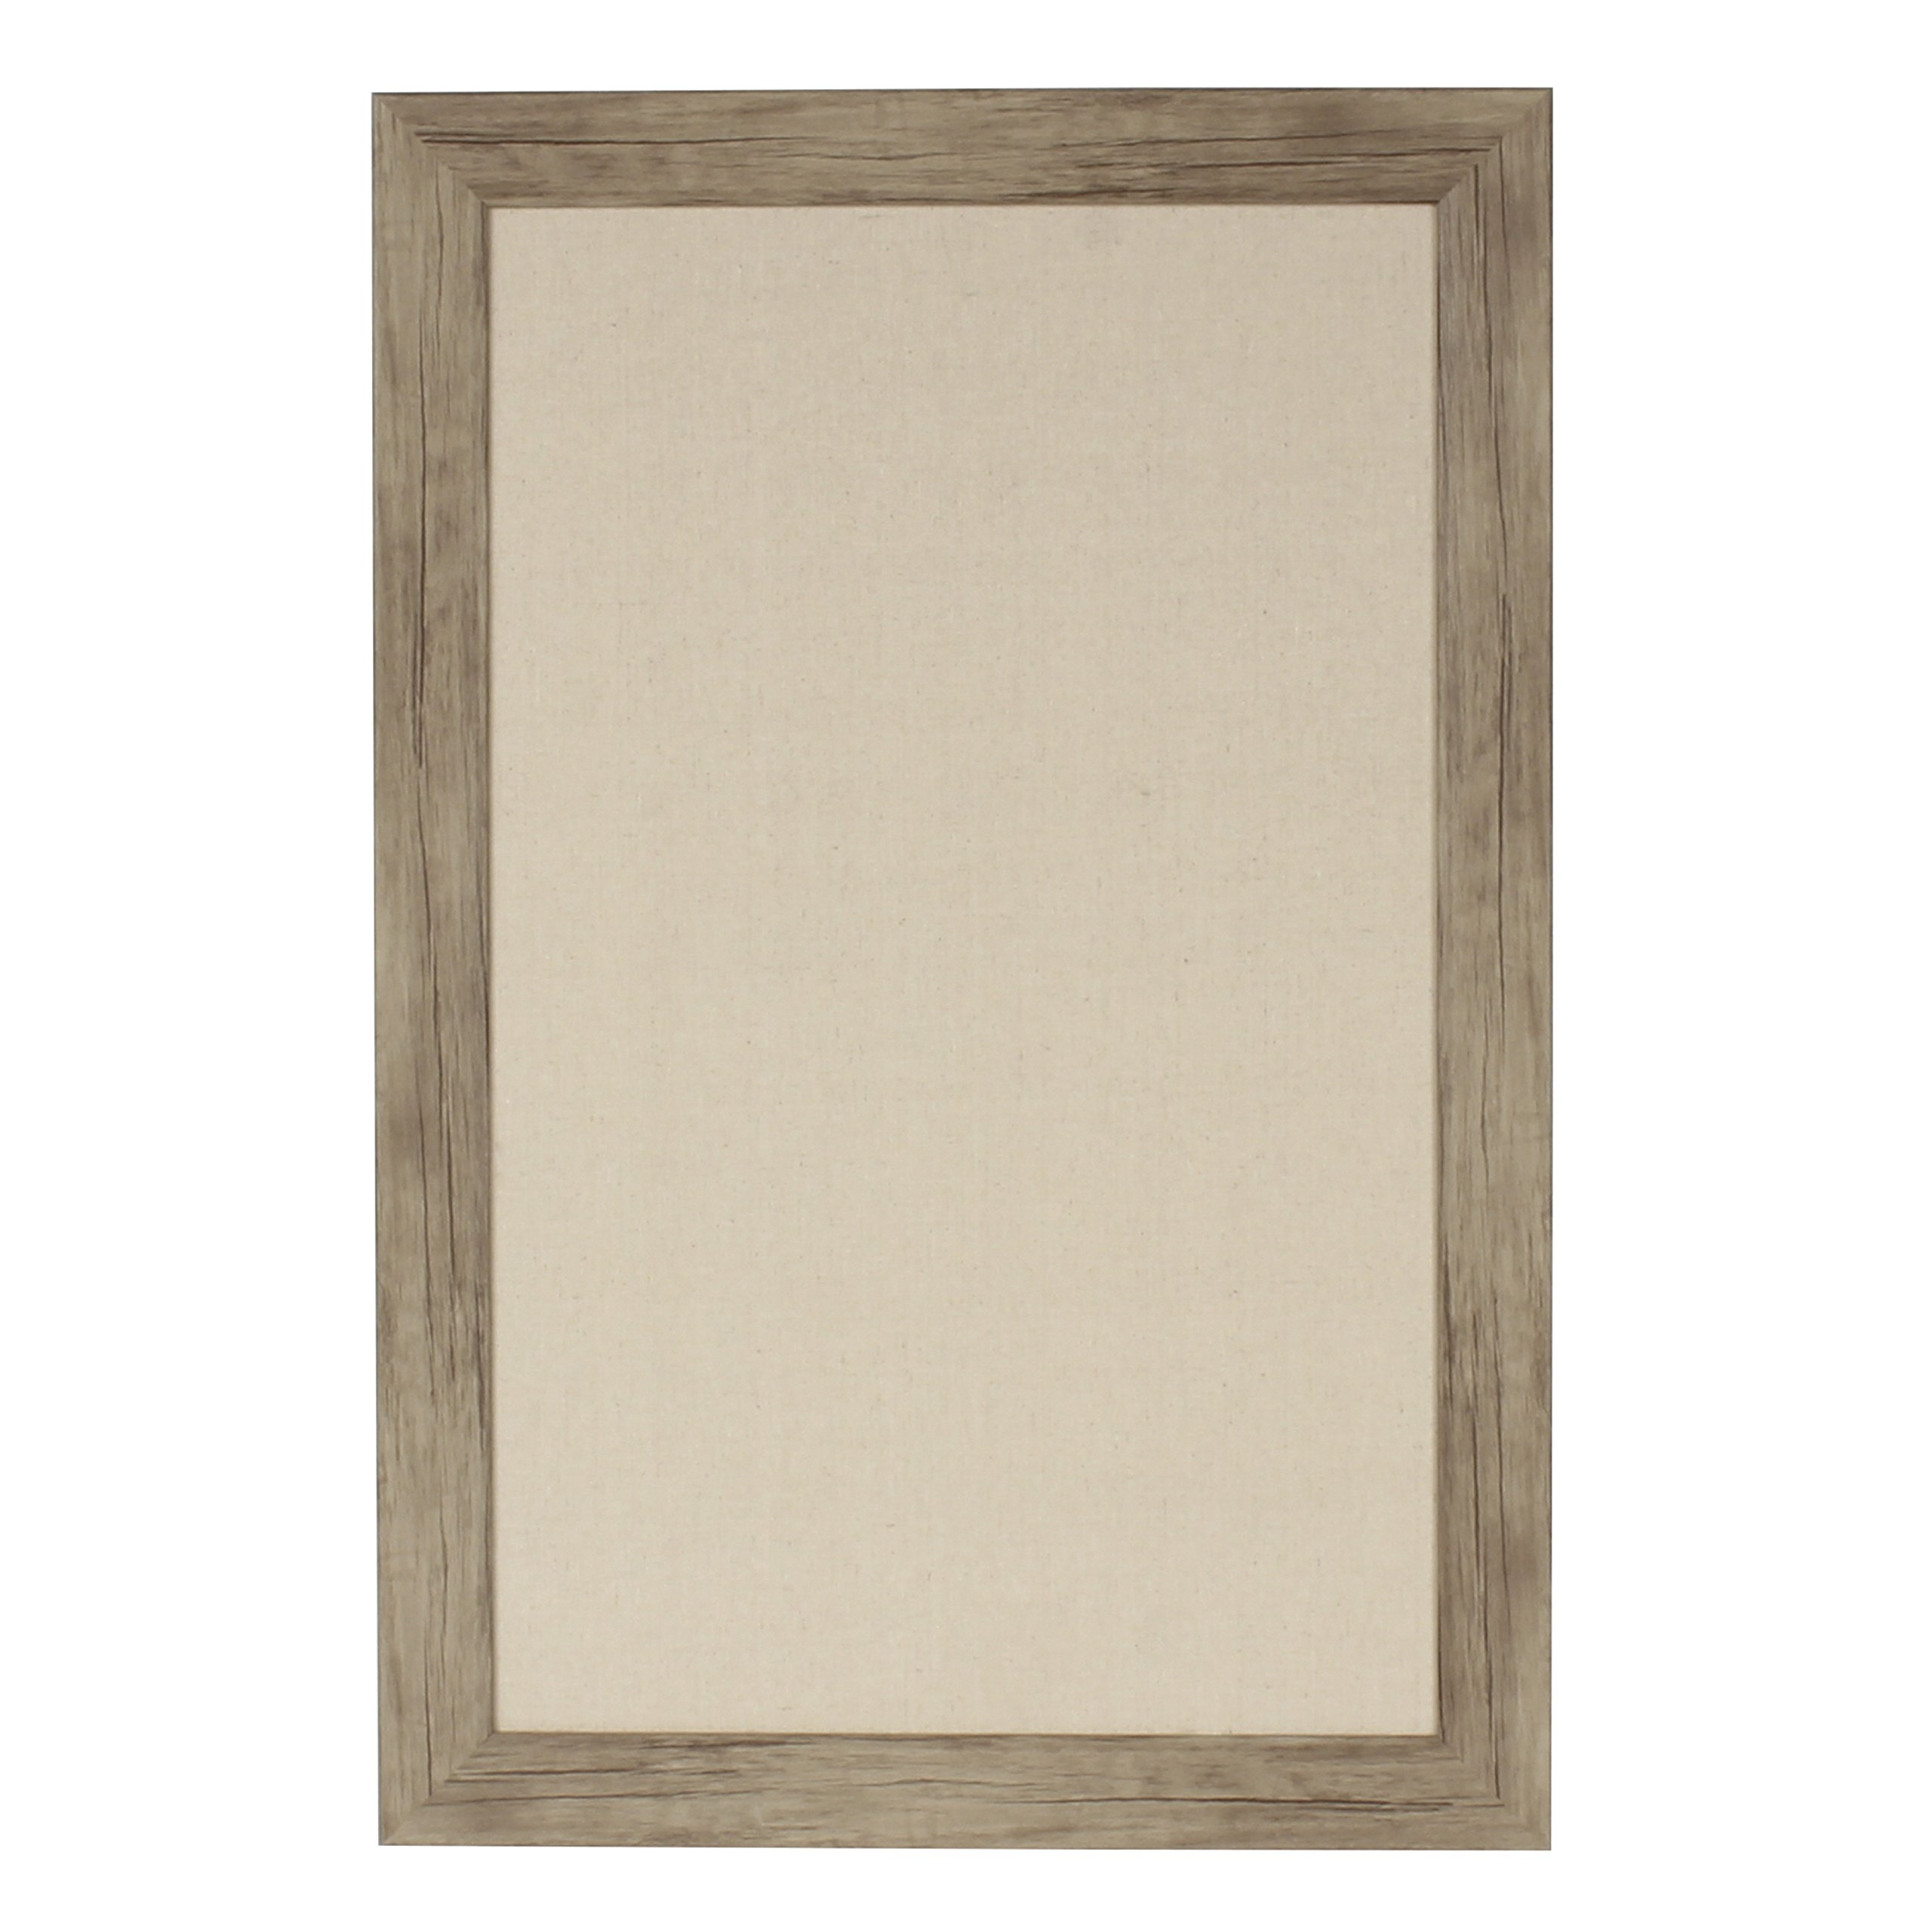 DesignOvation Beatrice Framed Pinboard, 18X27, Rustic Brown by DesignOvation